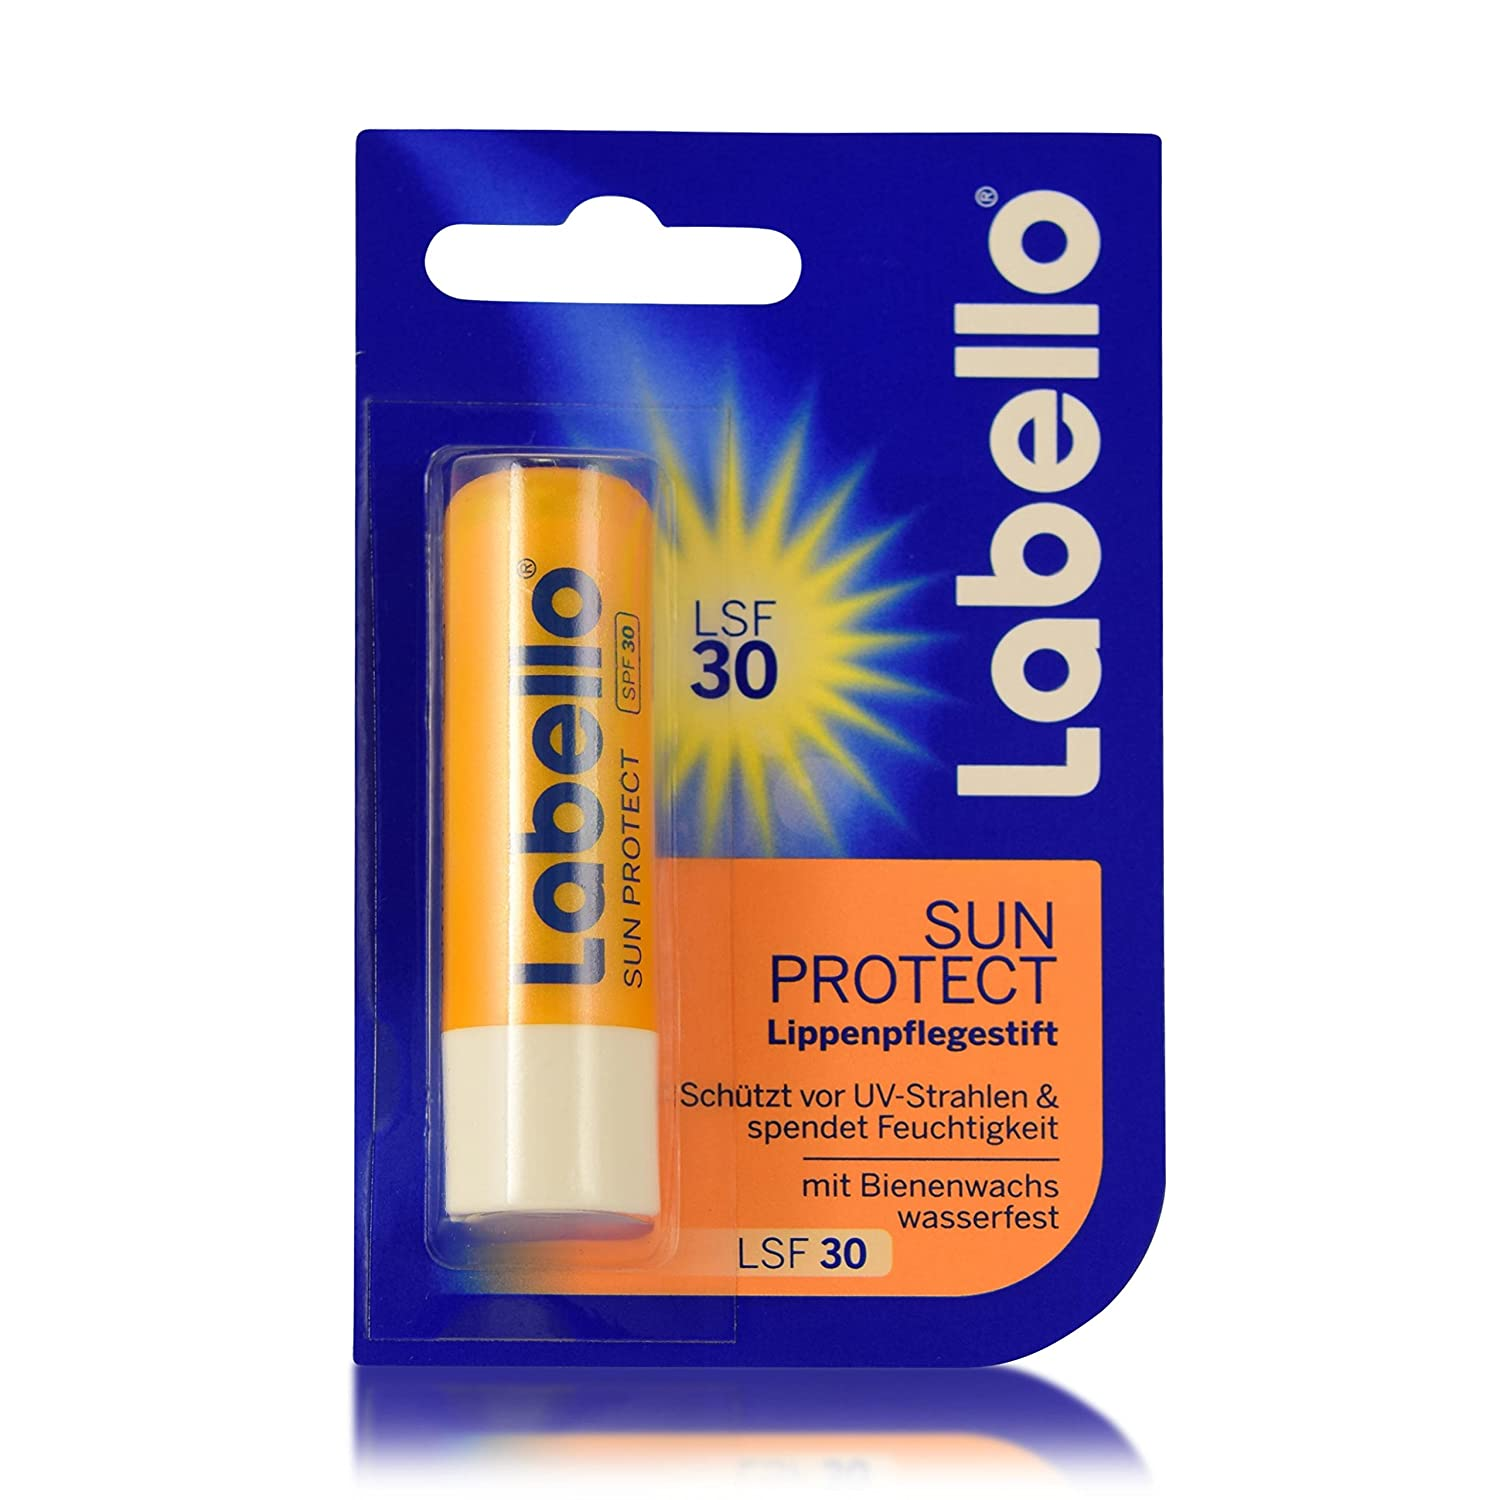 5Pack Labello Sun Protect 5x 4,8g Beiersdorf